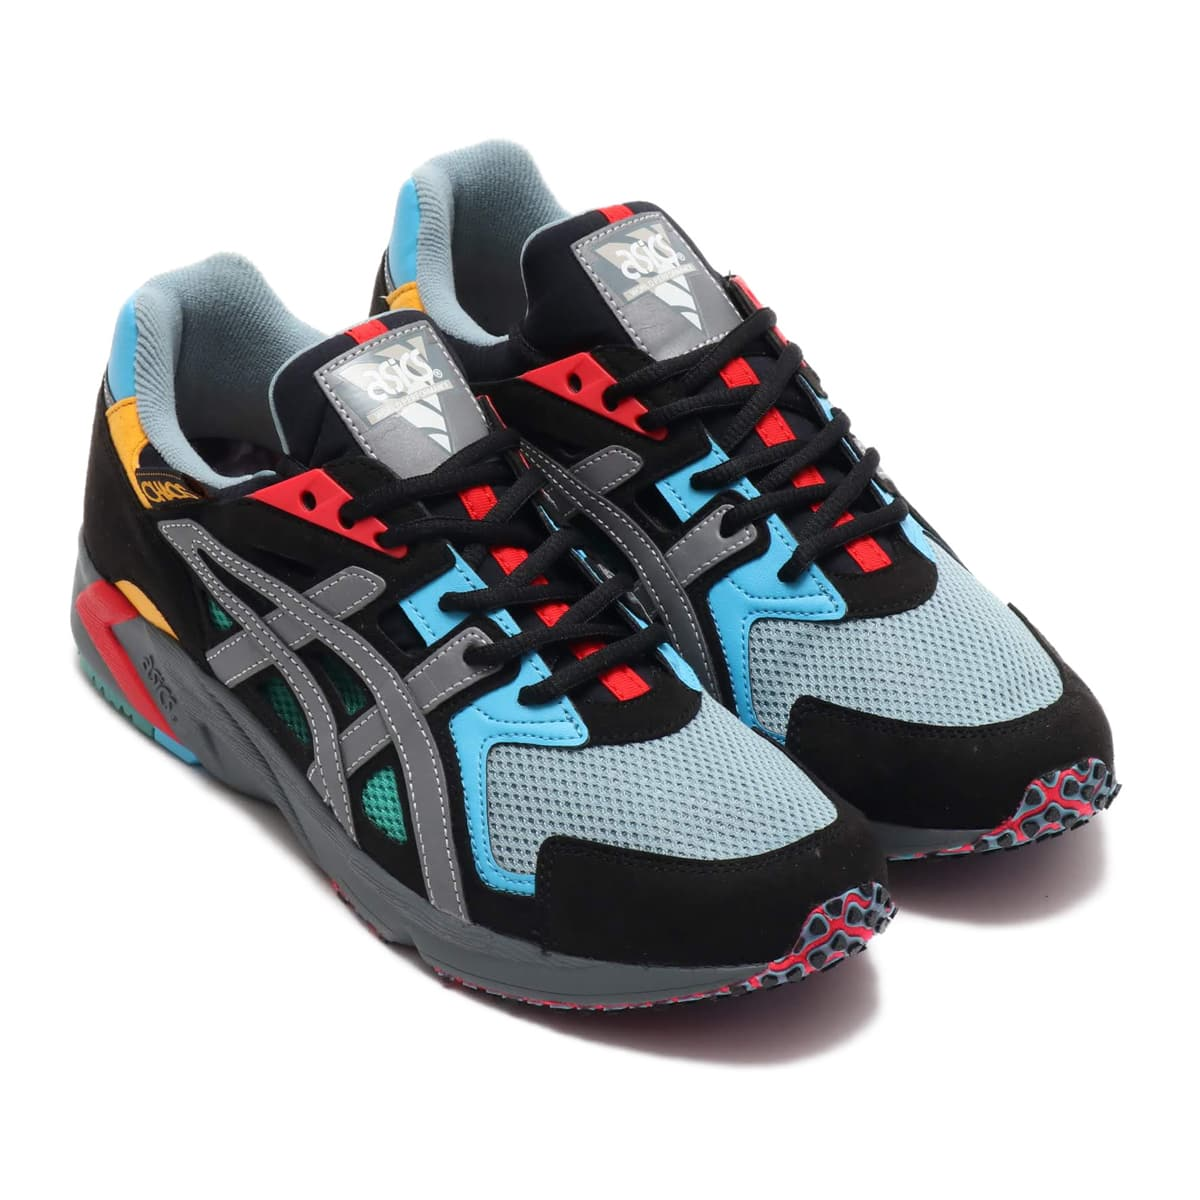 ASICSTIGER GEL-DS TRAINER OG VW MULTI 19AW-S_photo_large